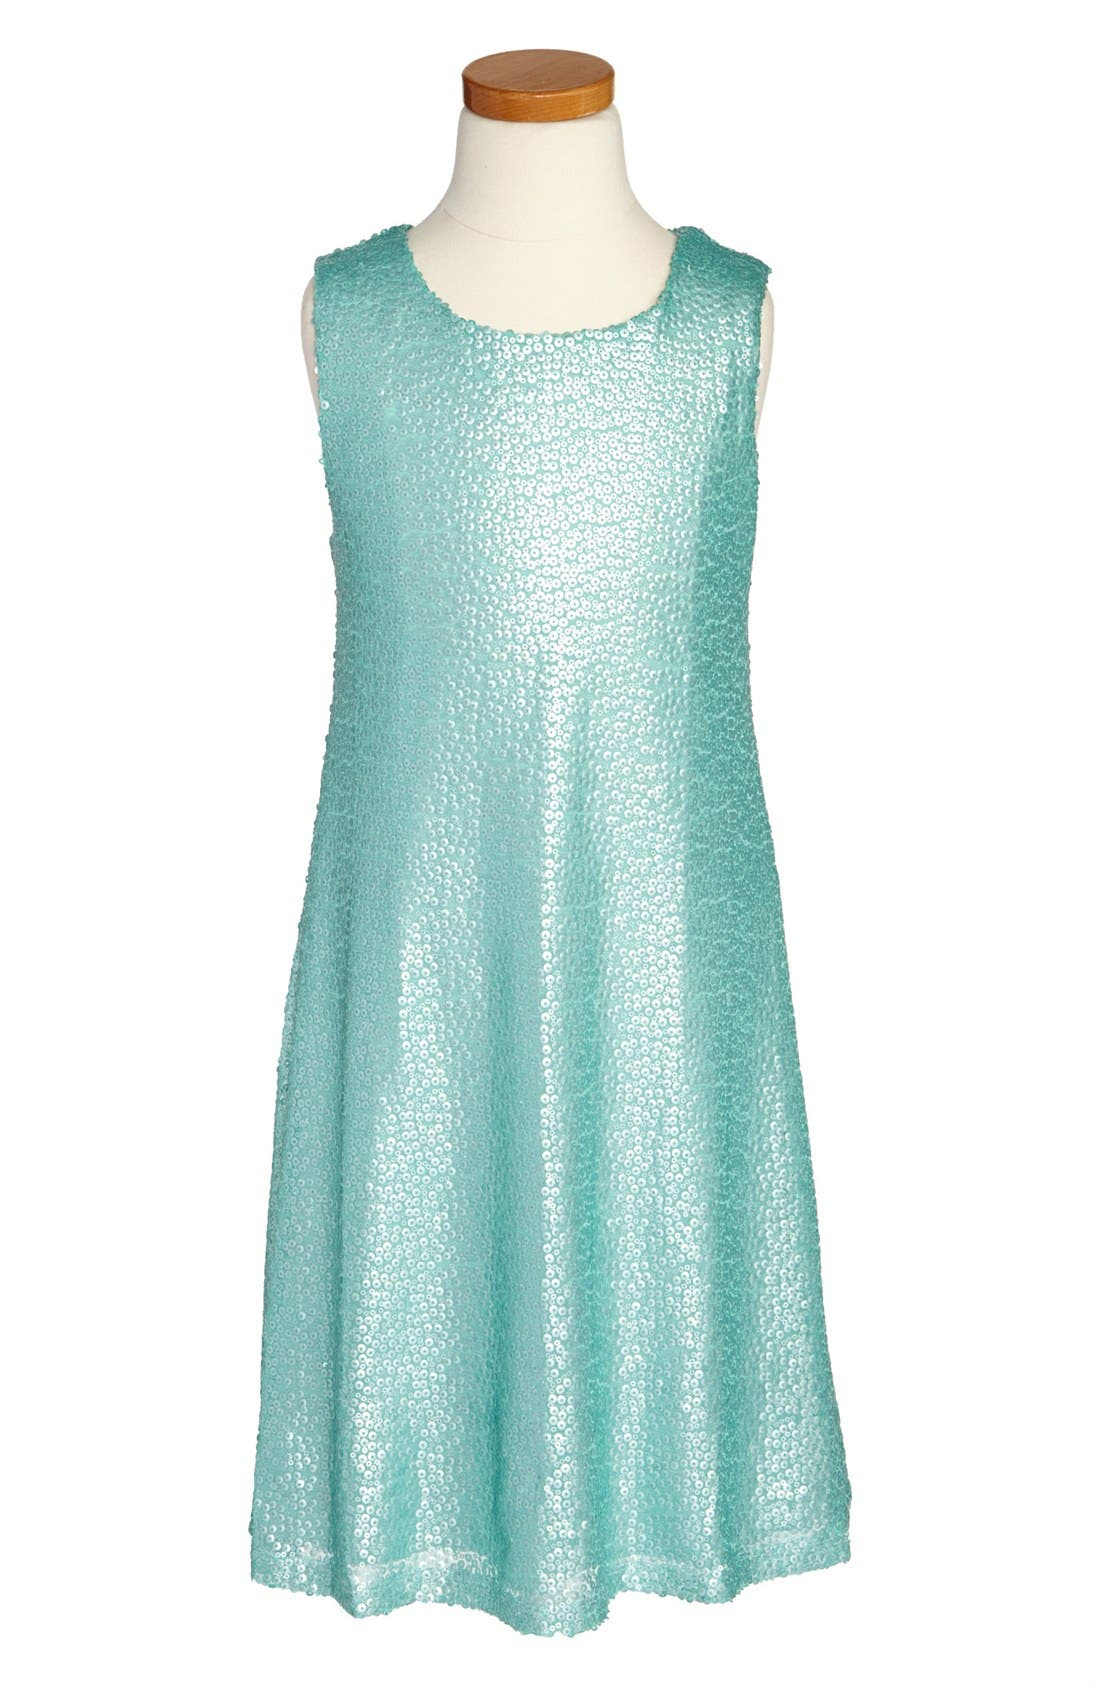 Main Image - Zunie Sequin Tank Dress (Big Girls)